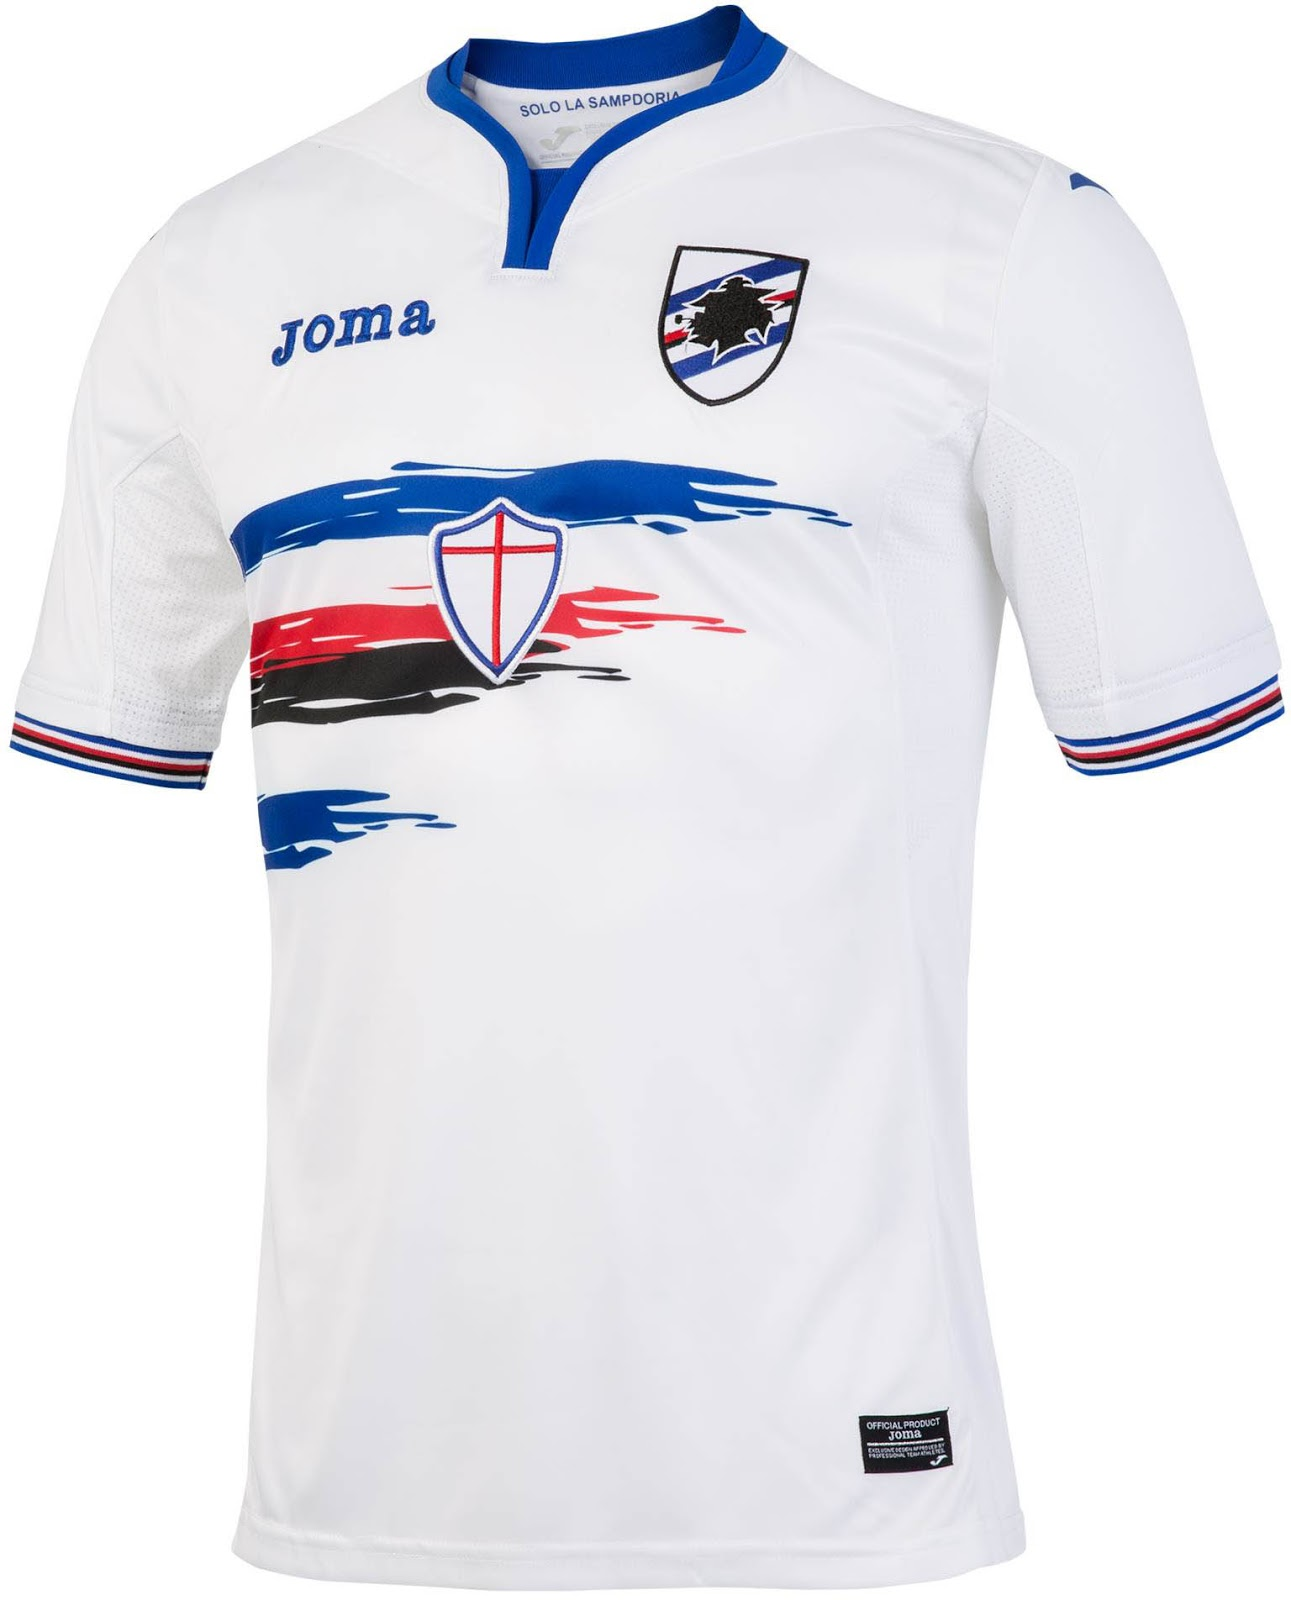 sampdoria-16-17-kits-away-shirts